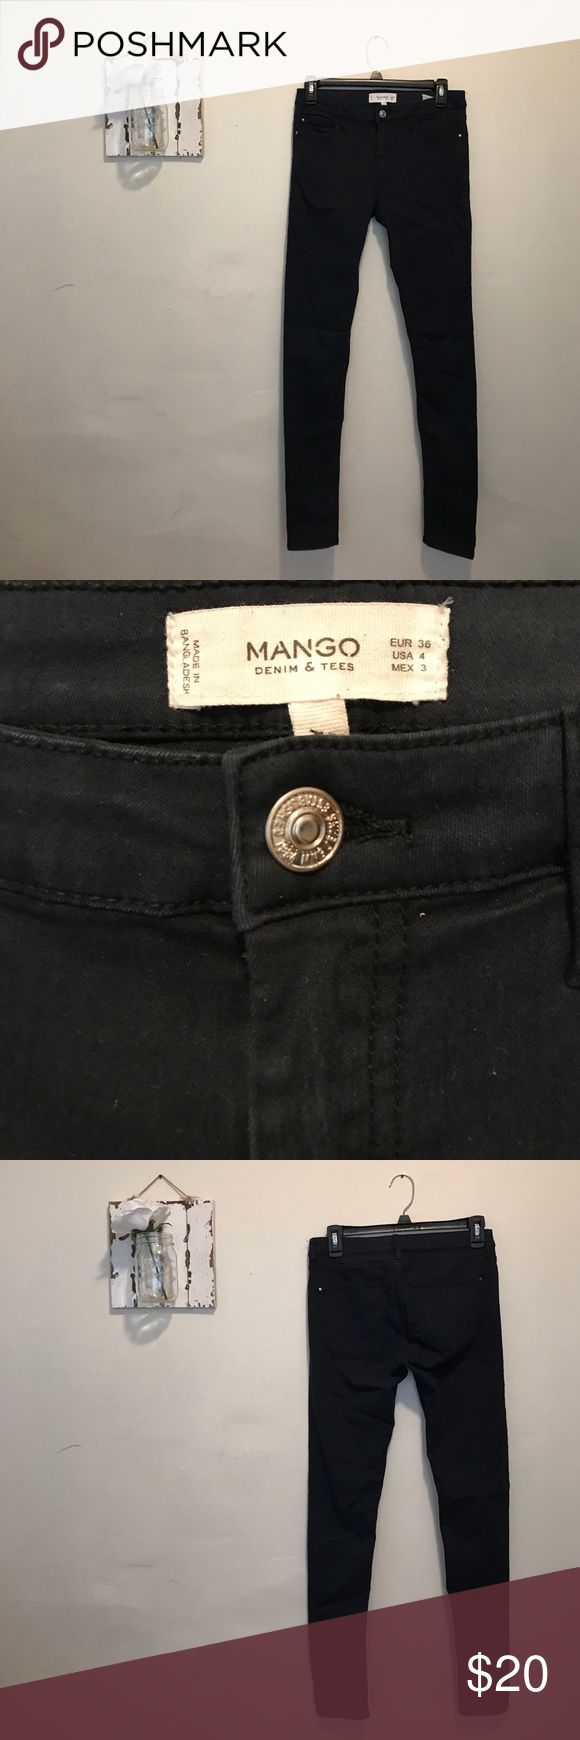 Mango blue skinny pant From Mango in Europe. Navy. Skinny to ankle. Fits like jeans. Mint Condition! Mango Jeans Skinny